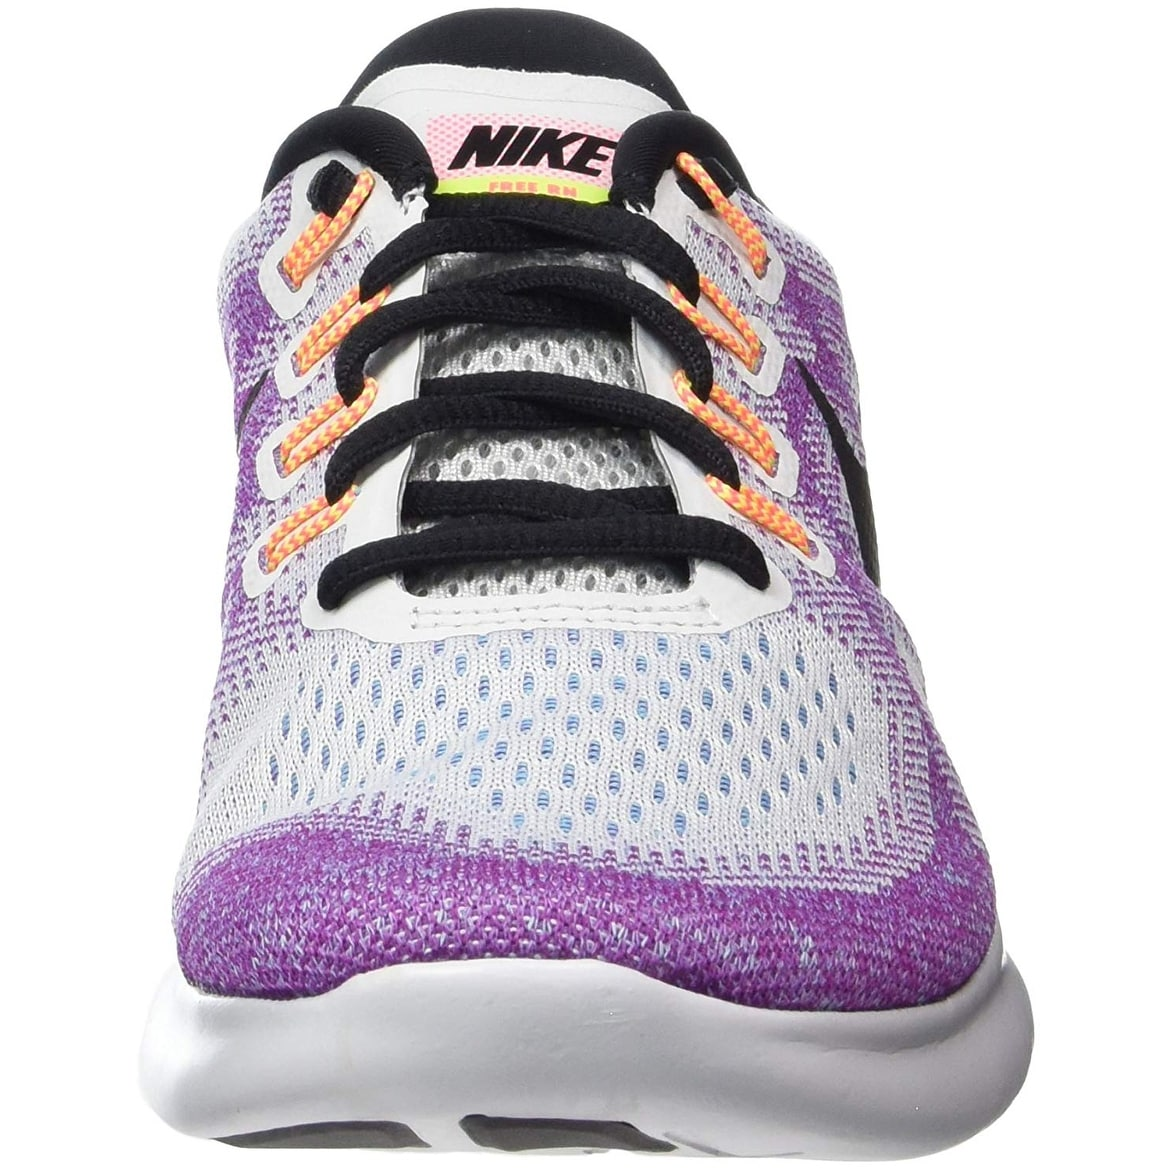 fda76bd9c48c3 Shop Nike Womens Nike flex 2017 RN Fabric Low Top Lace Up Running Sneaker -  Free Shipping Today - Overstock - 22413187